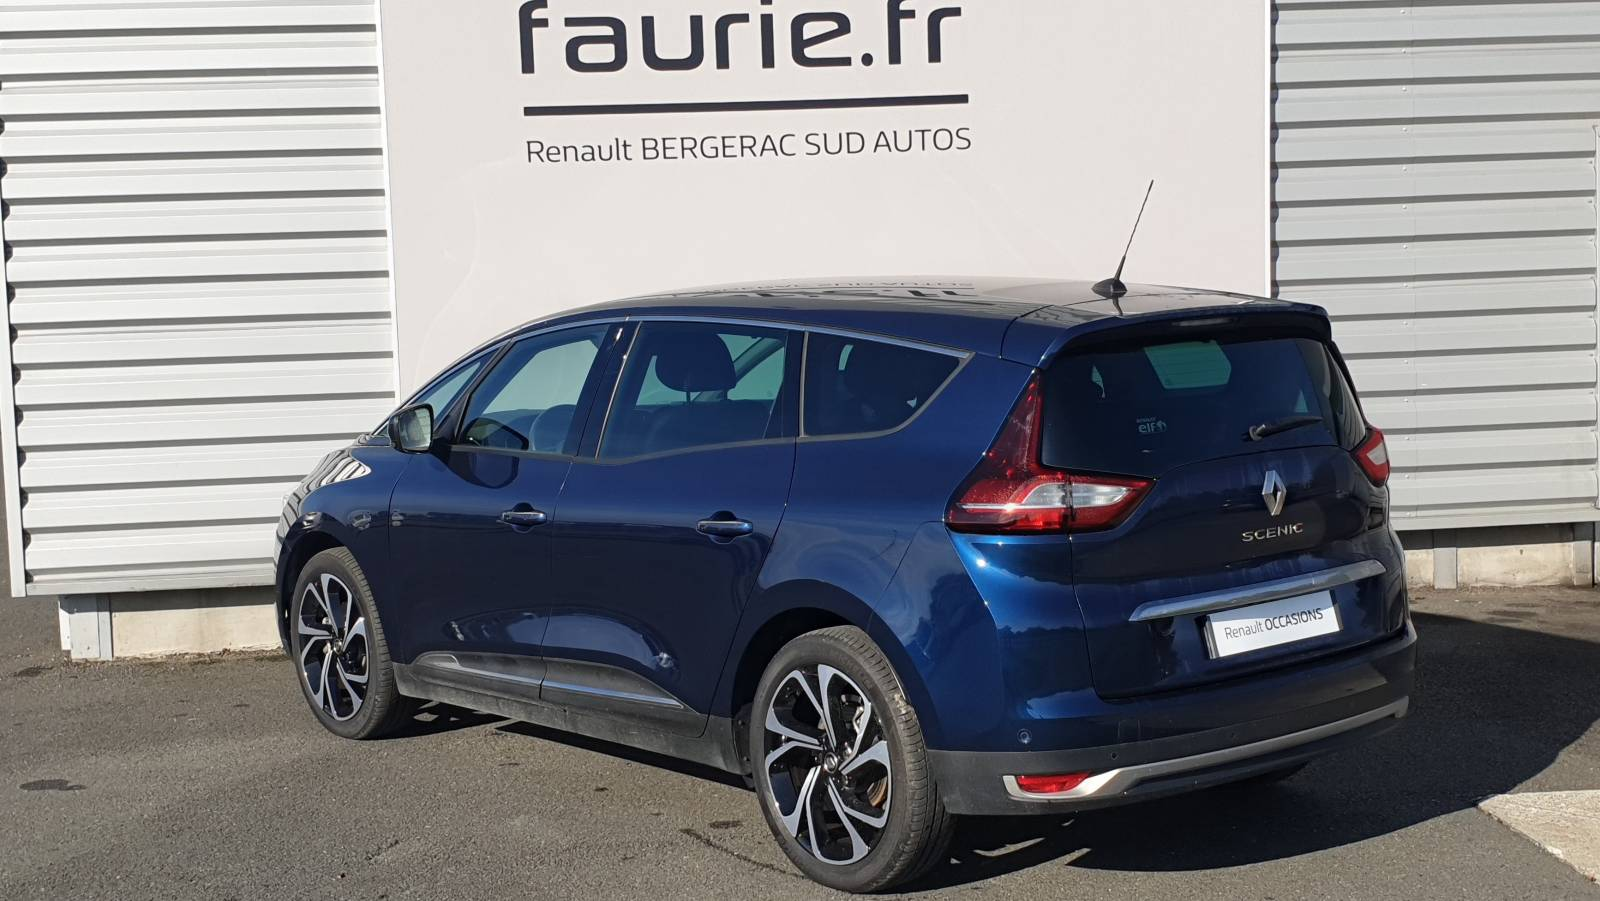 RENAULT Grand Scenic Blue dCi 150 - véhicule d'occasion - Site Internet Faurie - Renault - Faurie Auto Bergerac - 24100 - Bergerac - 8